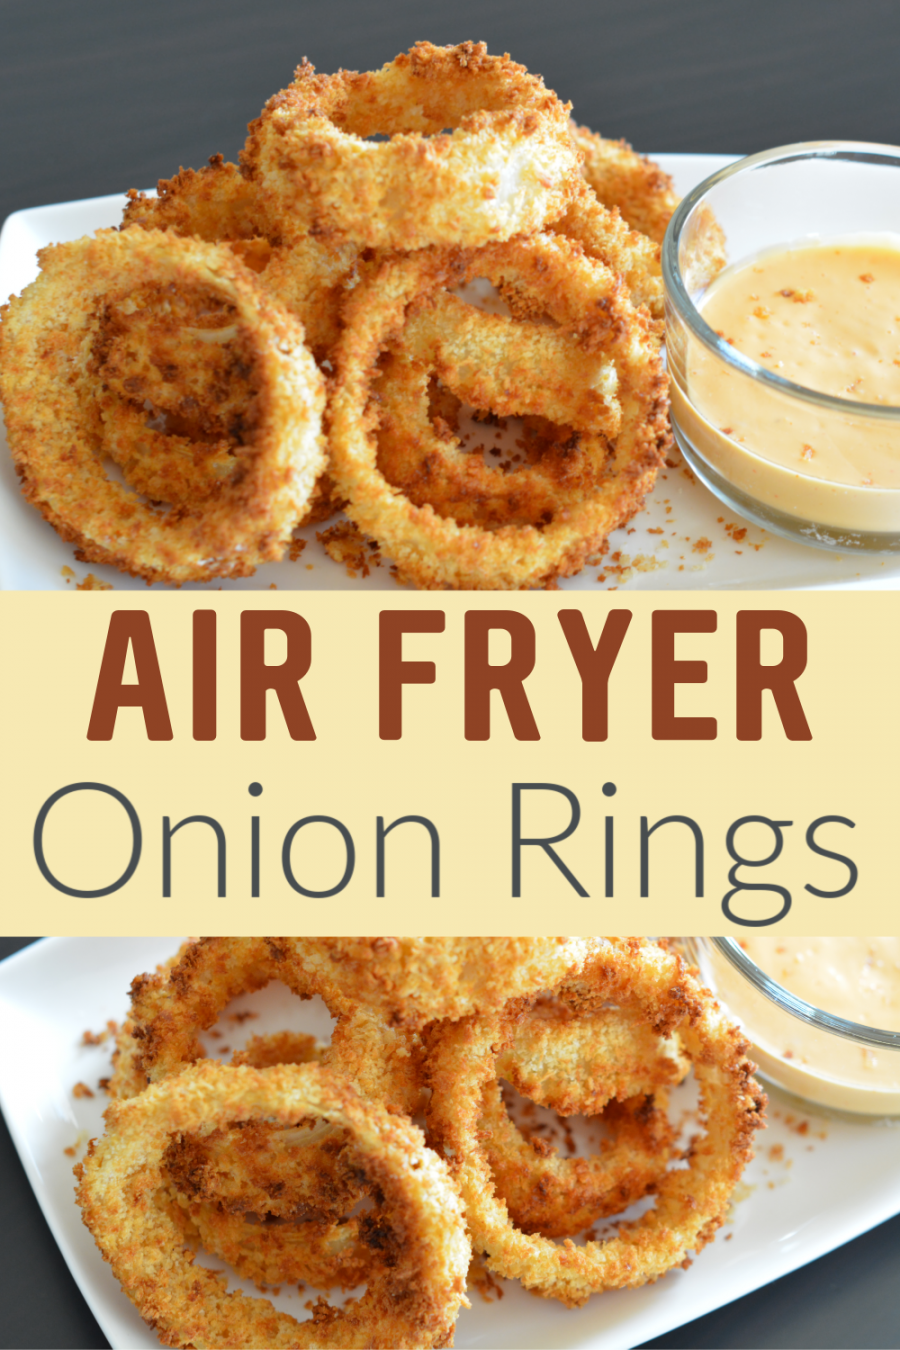 Air Fryer Onion Rings Recipe  Thrifty Nifty Mommy is part of Onion rings - I LOVE making foods in our air fryer  My new favorite is this air fryer onion rings recipe! They cook up so crisp and delicious! The perfect appetizer!